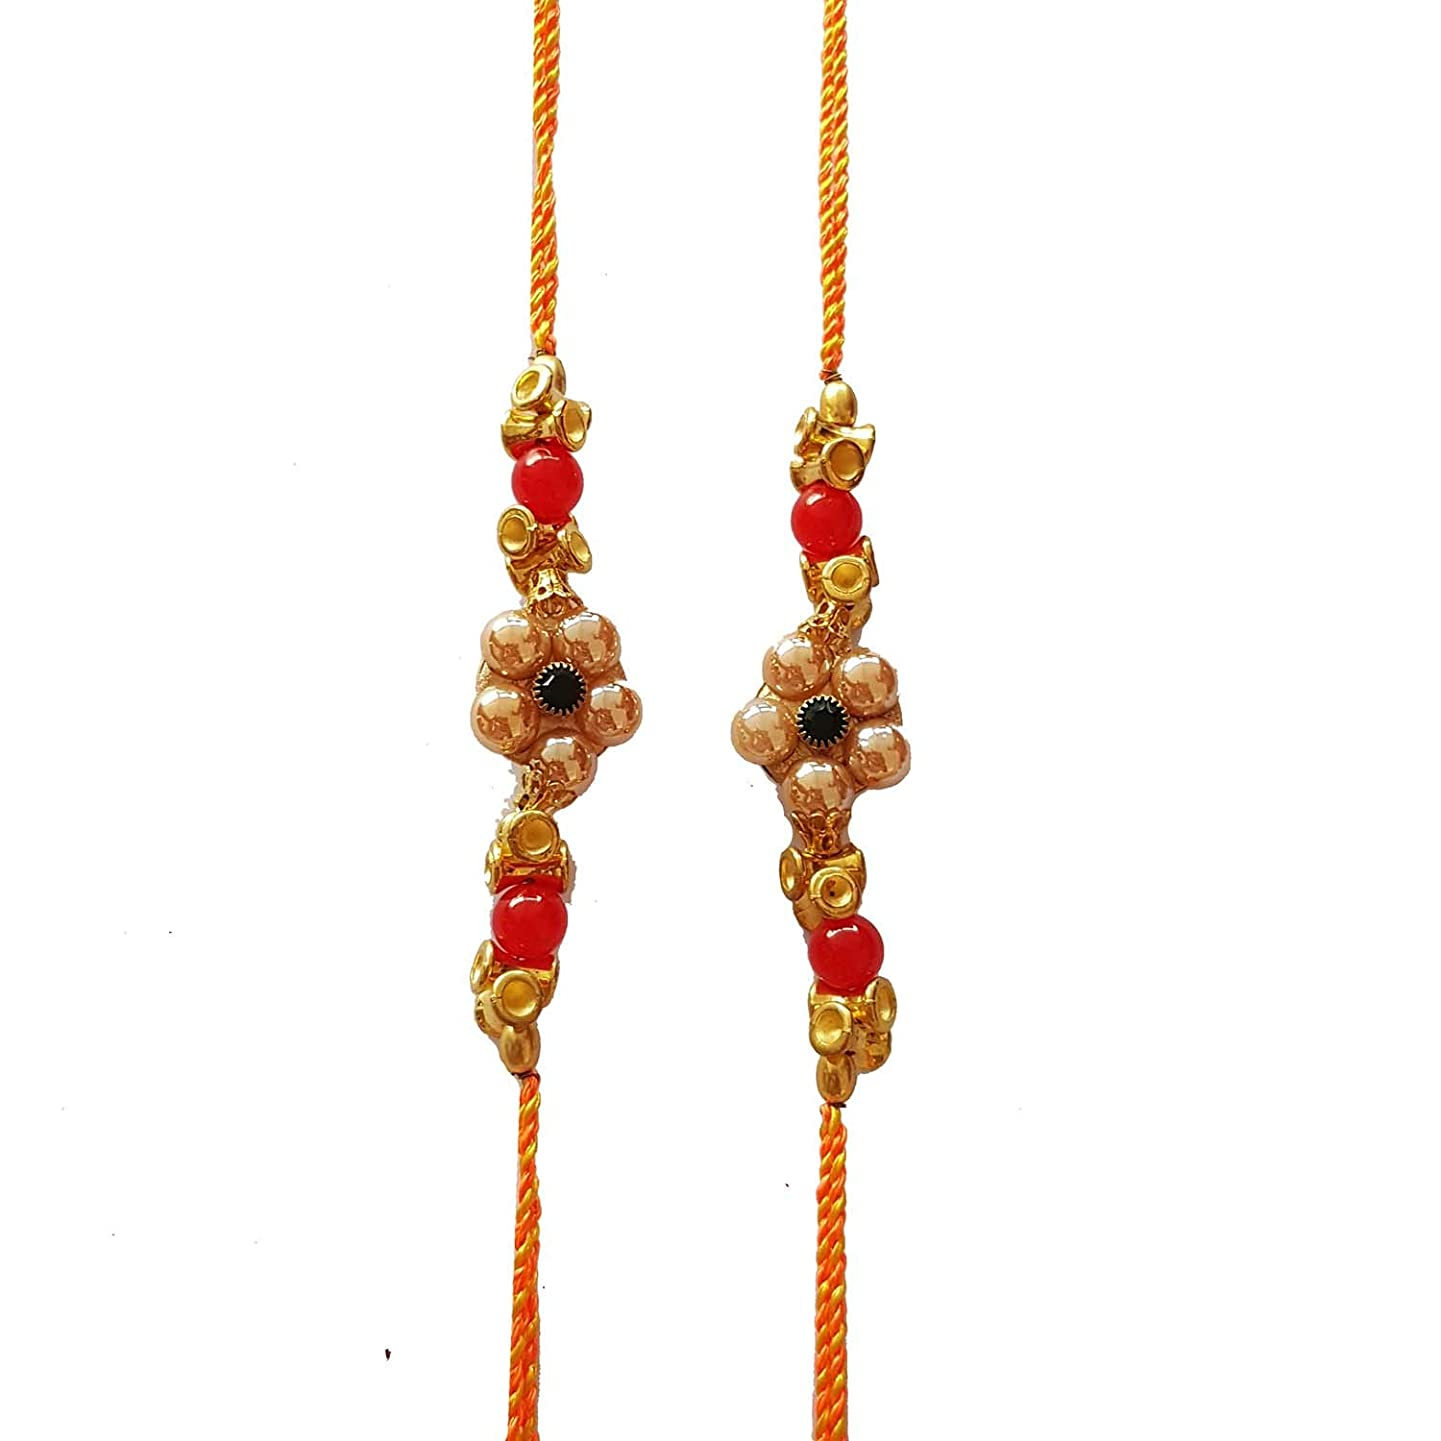 Jaipri, 2 Pcs Rakhi Set for Bhaiya, Bhabhi on Indian Rakhi Rakshabandhan Festival, Best Bands for Brother